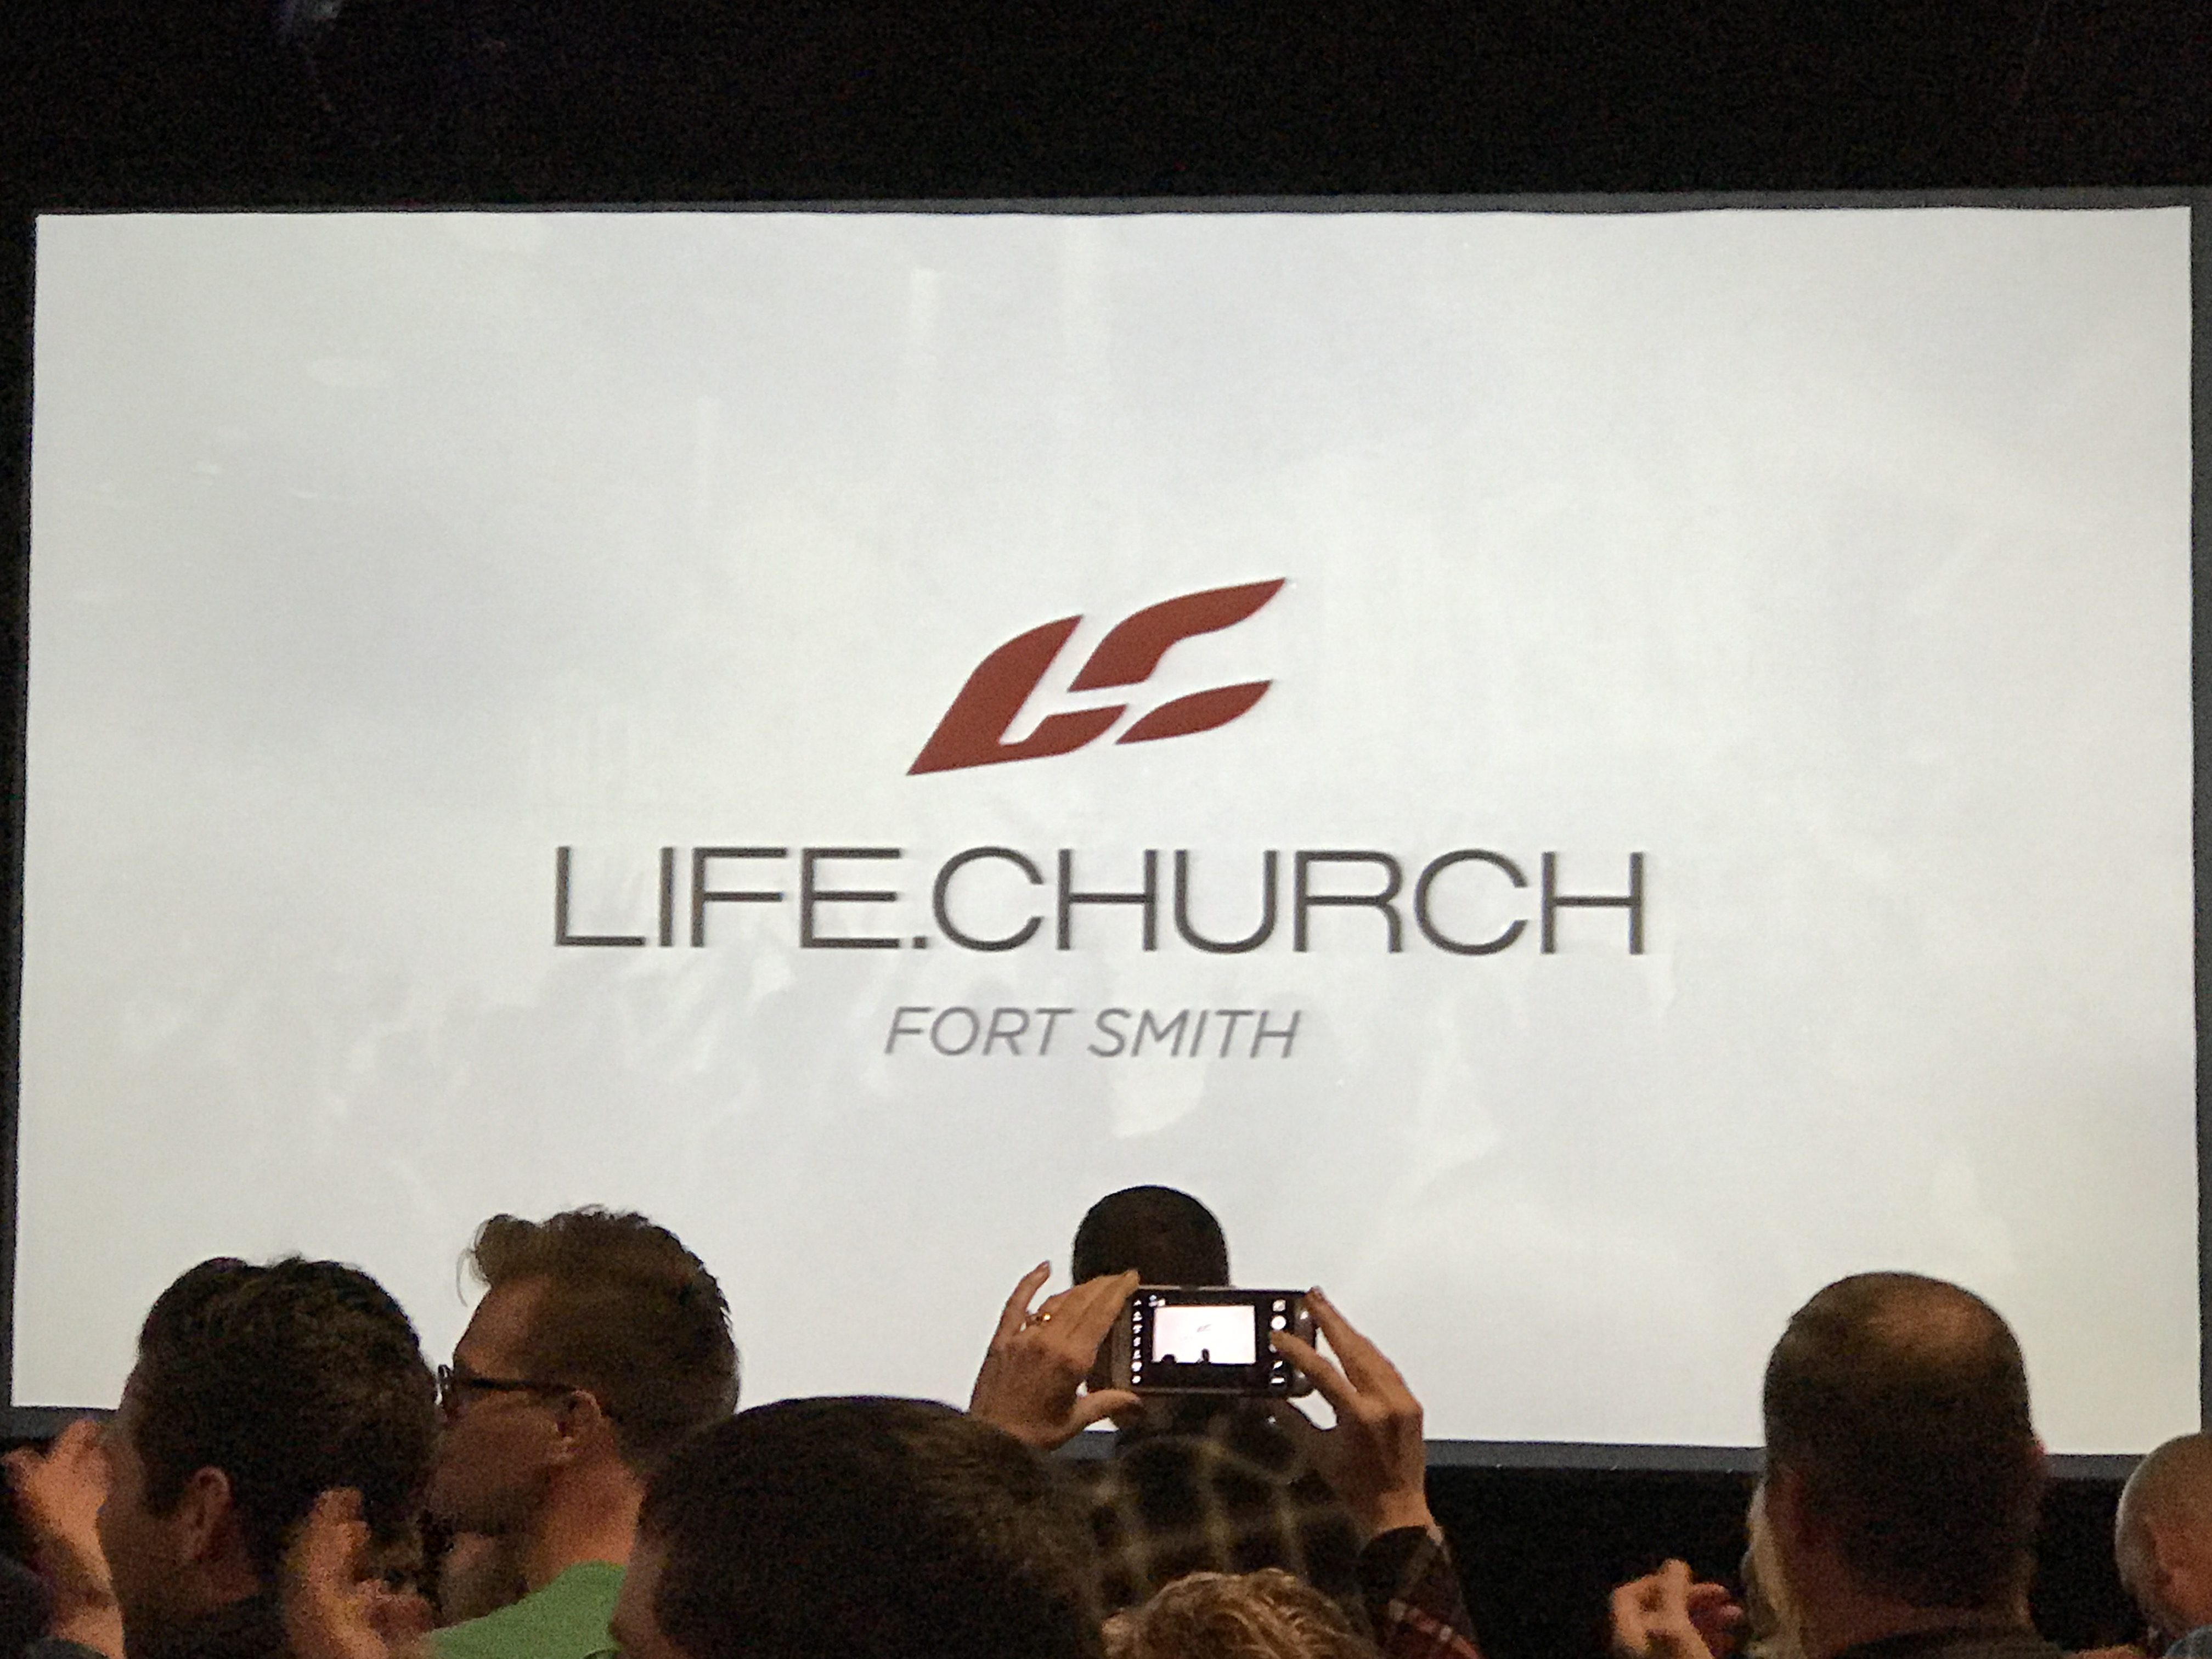 Life.Church Fort Smith logo unveiled after TheBOD.church Fort Smith approved joining Life.Church family.